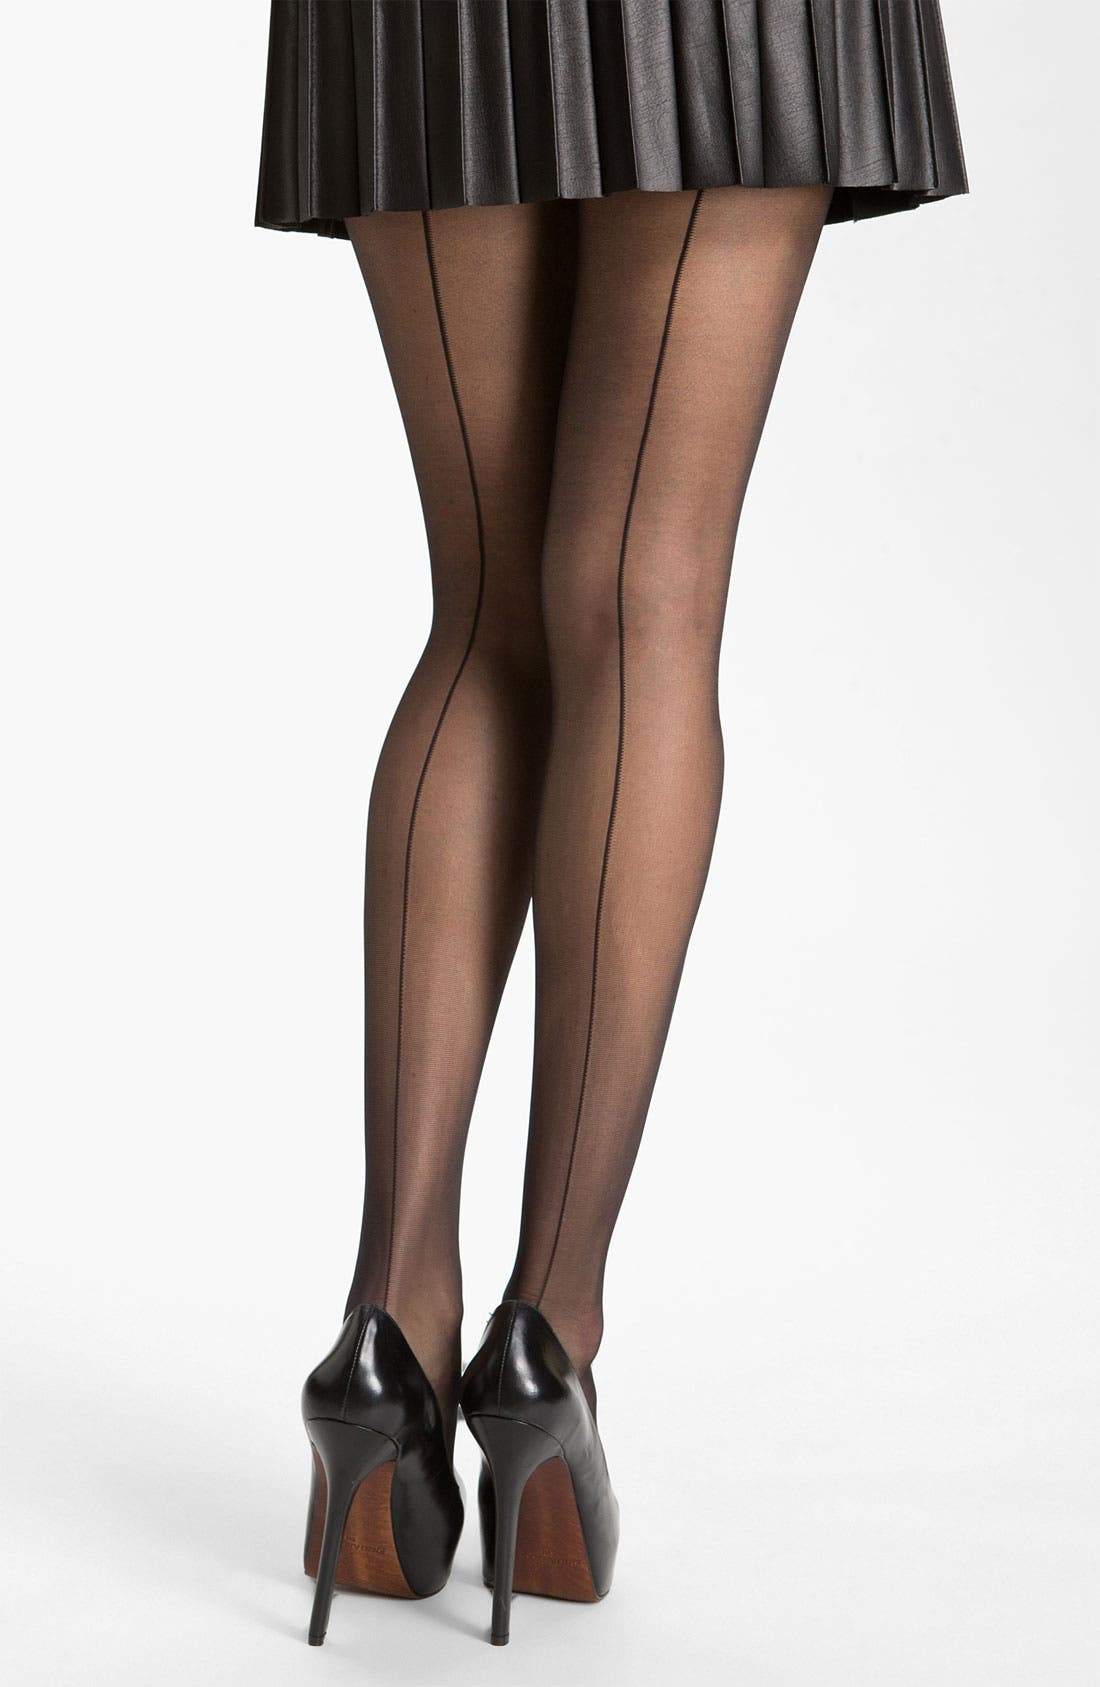 Main Image - Nordstrom Sheer Back Seam Control Top Stockings